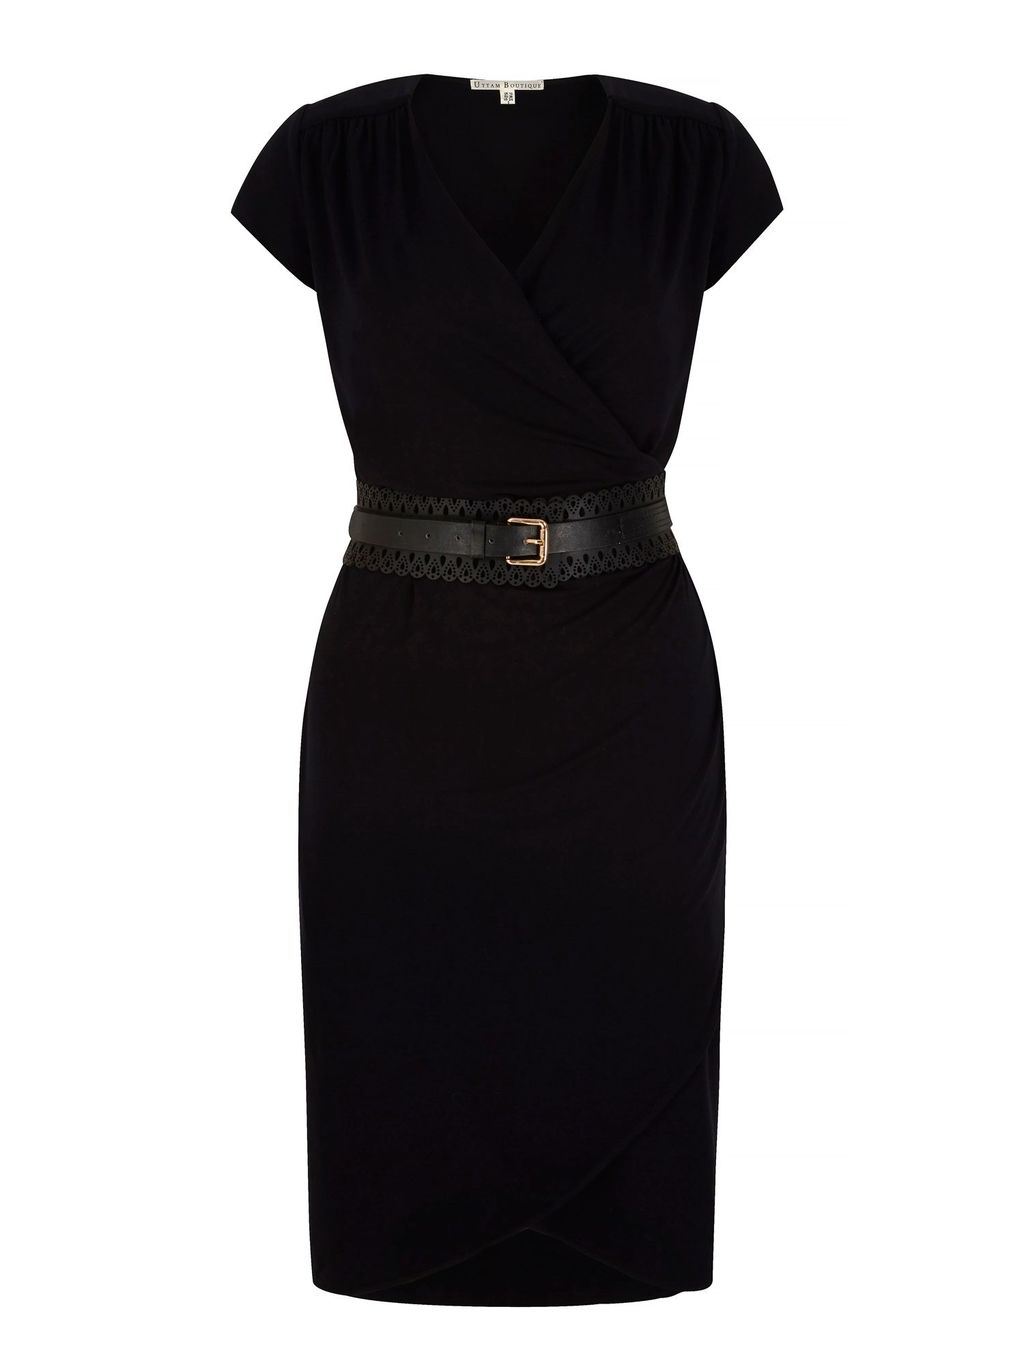 Obi Belted Wrap Dress With Belt Included, Black - style: faux wrap/wrap; neckline: v-neck; sleeve style: capped; pattern: plain; waist detail: belted waist/tie at waist/drawstring; predominant colour: black; occasions: evening; length: just above the knee; fit: body skimming; fibres: viscose/rayon - stretch; sleeve length: short sleeve; pattern type: fabric; texture group: jersey - stretchy/drapey; season: s/s 2016; wardrobe: event